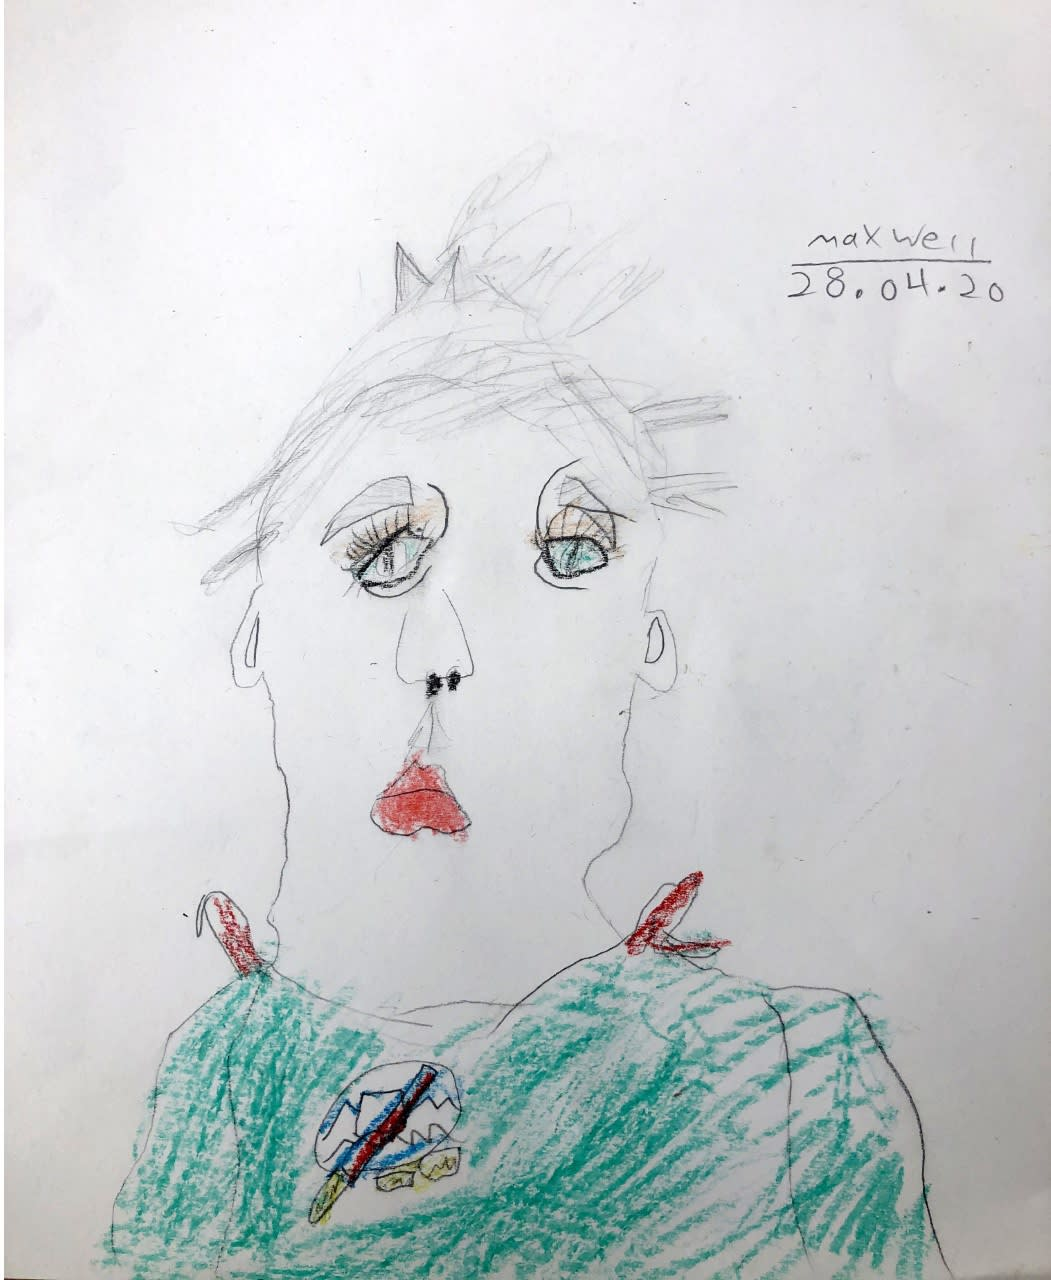 Maxwell Purdy, age 6, Self portrait, inspired by Pablo Picasso.